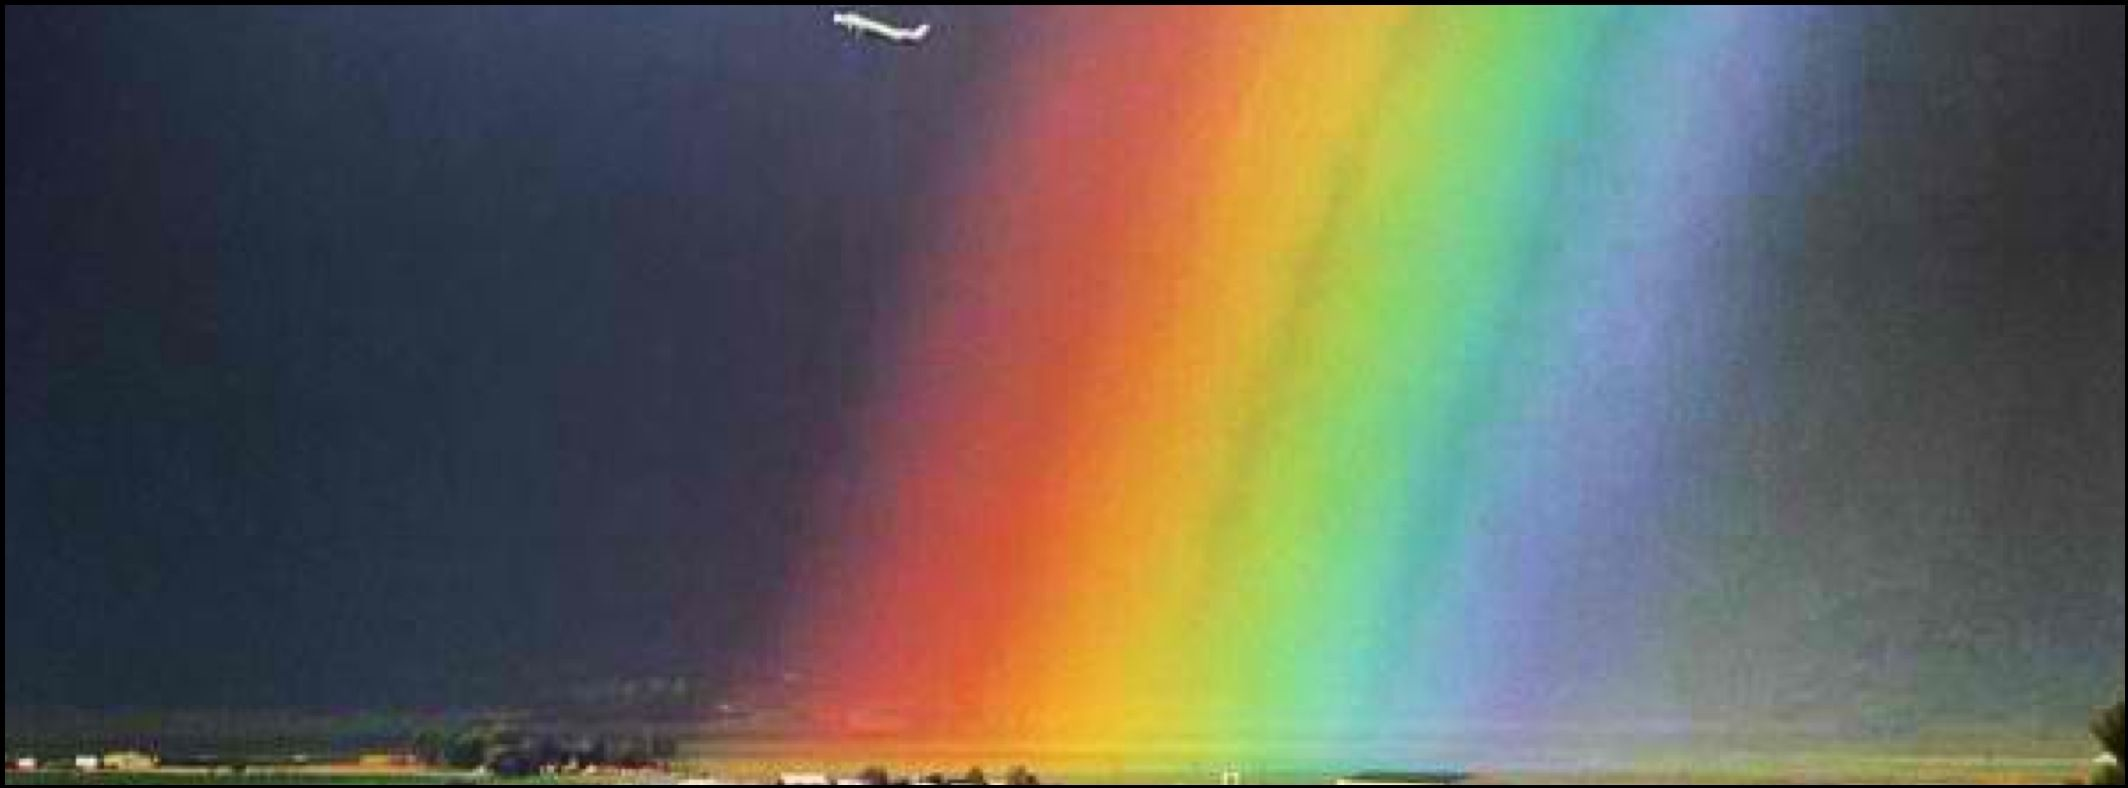 Airplane Rainbow Beauty And Nature Facebook Cover Photo Fb